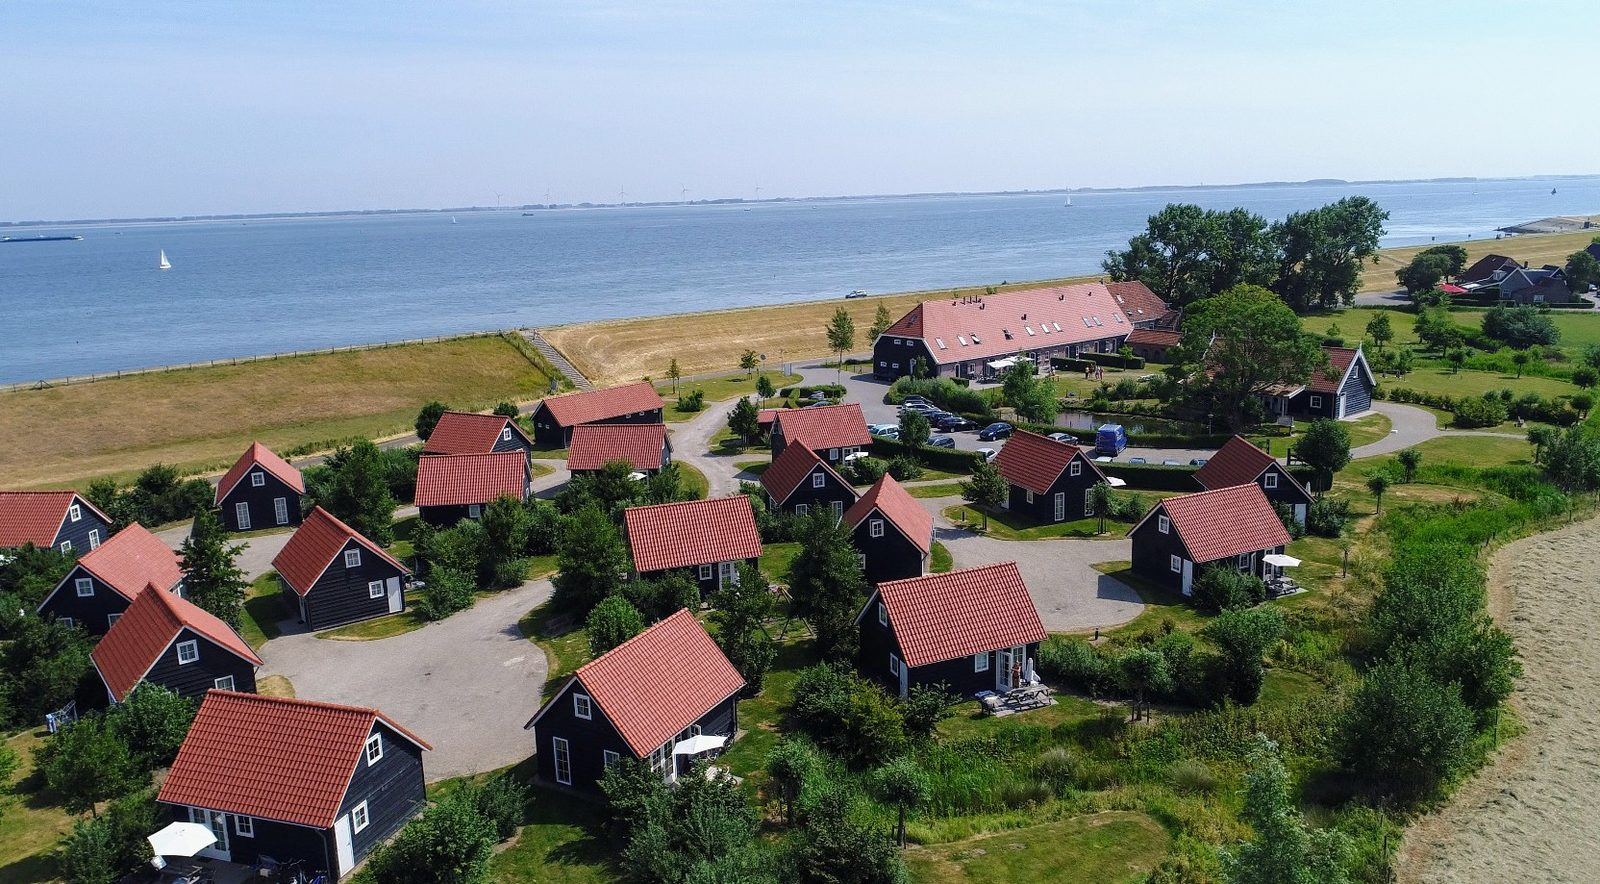 Zeeland Holiday homes